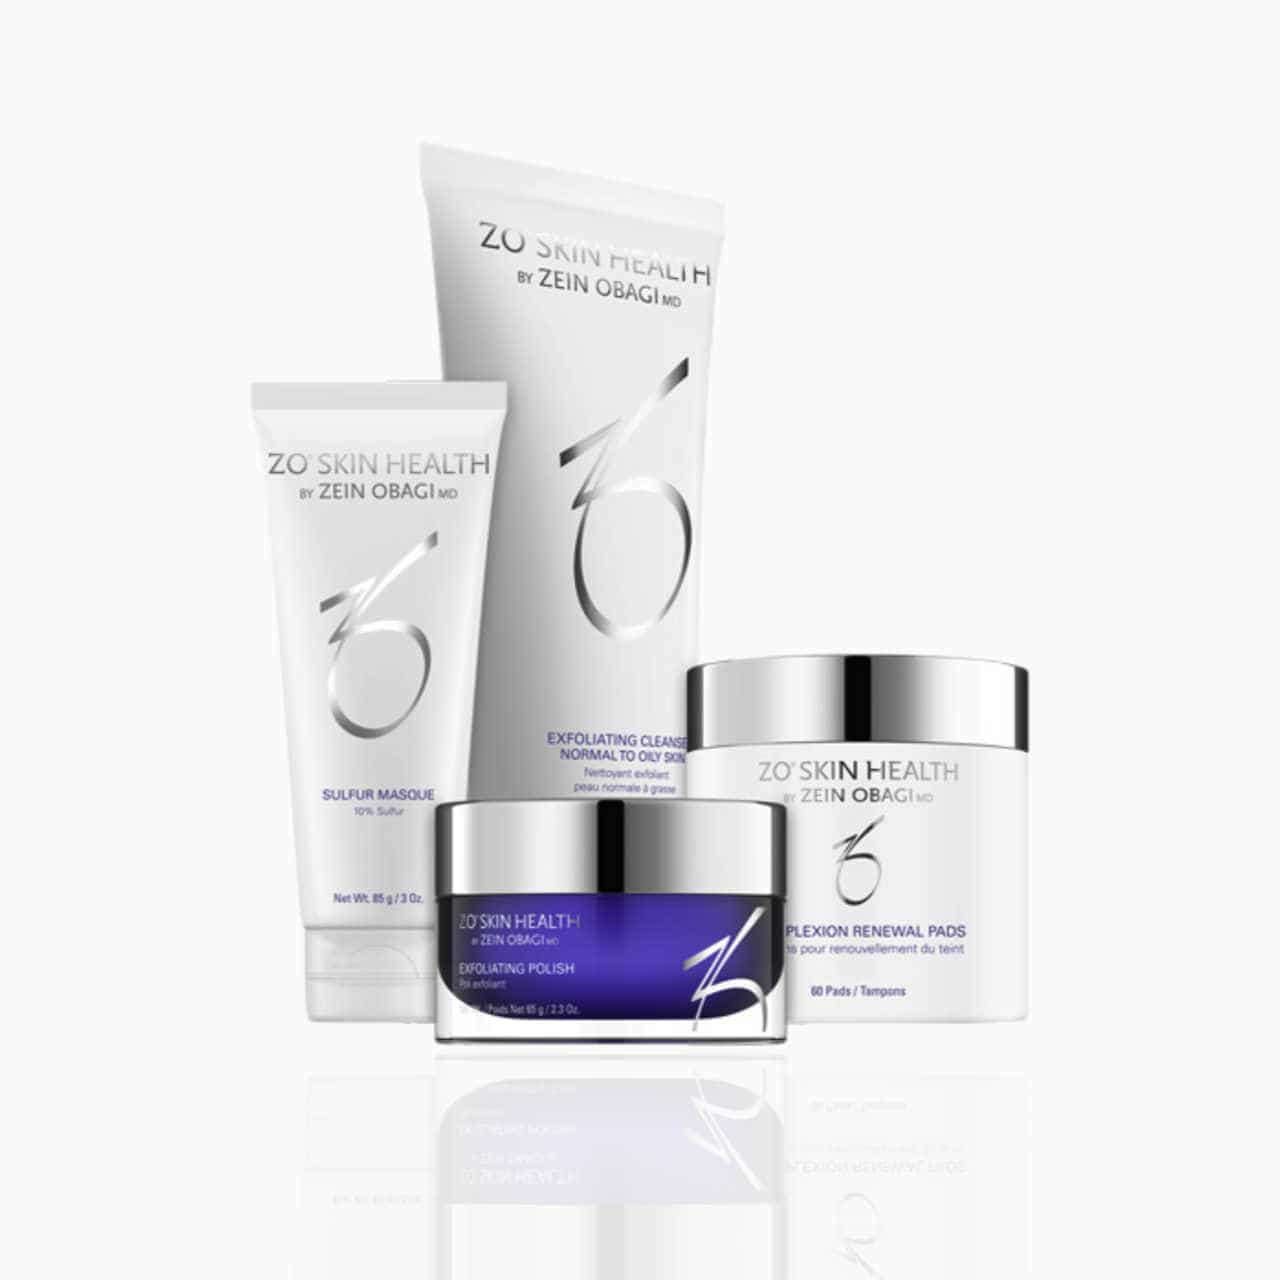 ZO Skin Health Complexion Clearing